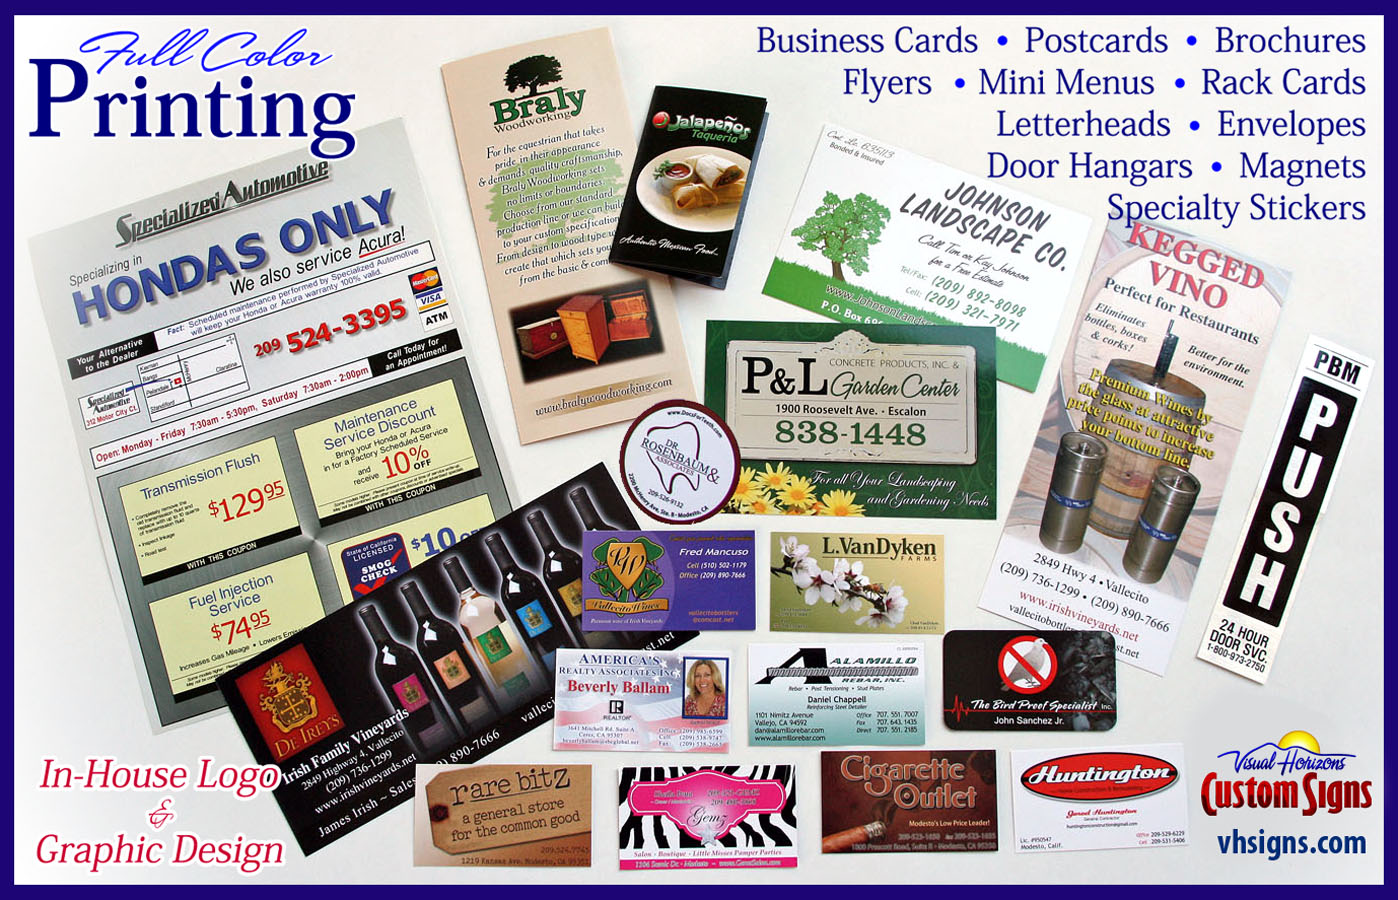 Business Cards, Postcards, Brochures & More! | Visual Horizons ...